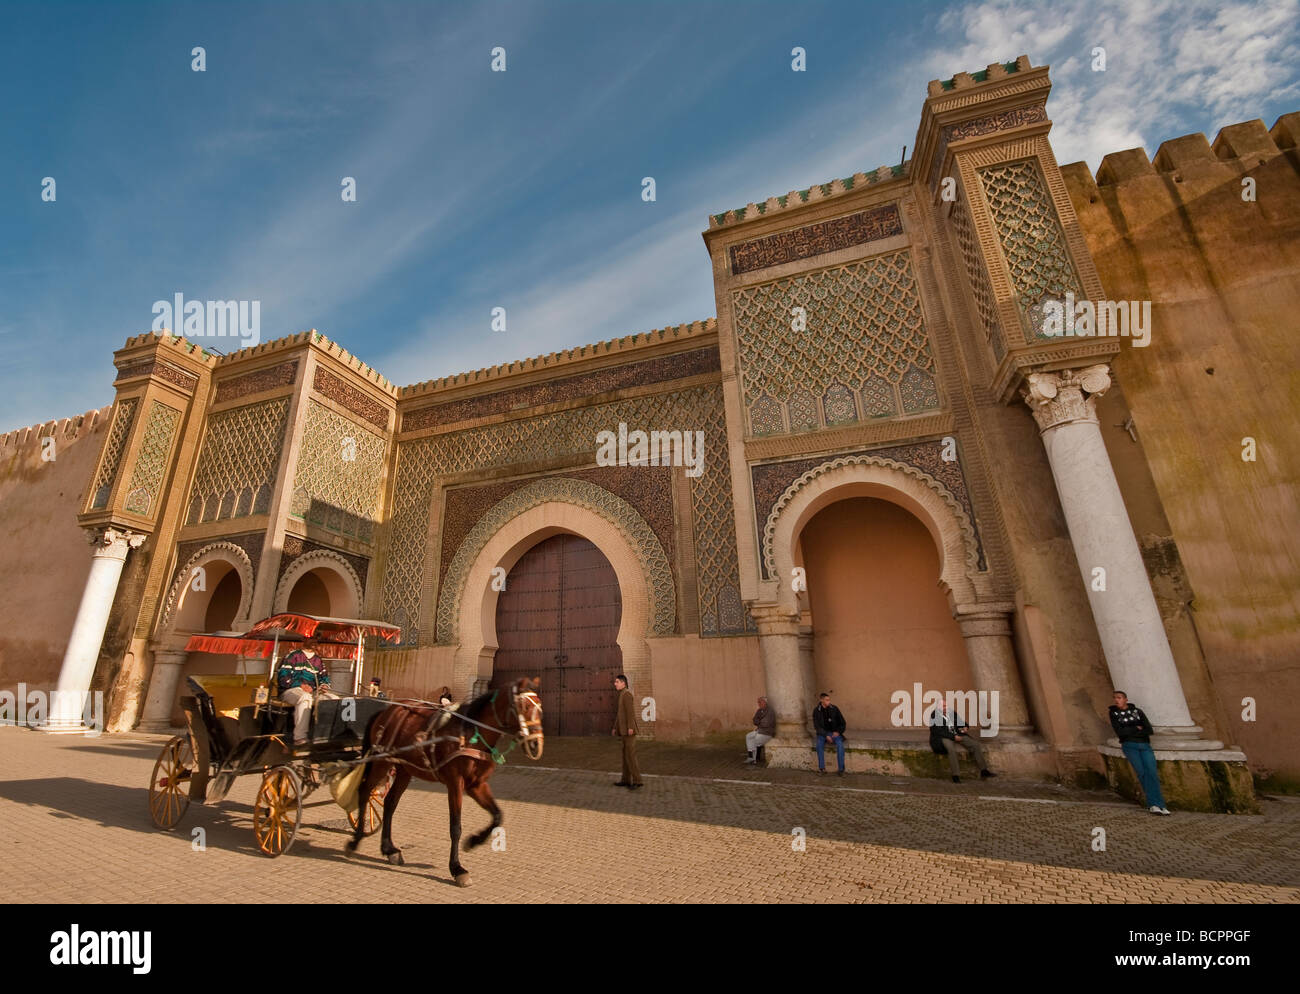 A wide angle shot of a tourist taking a carriage ride beside the famous Bab  (